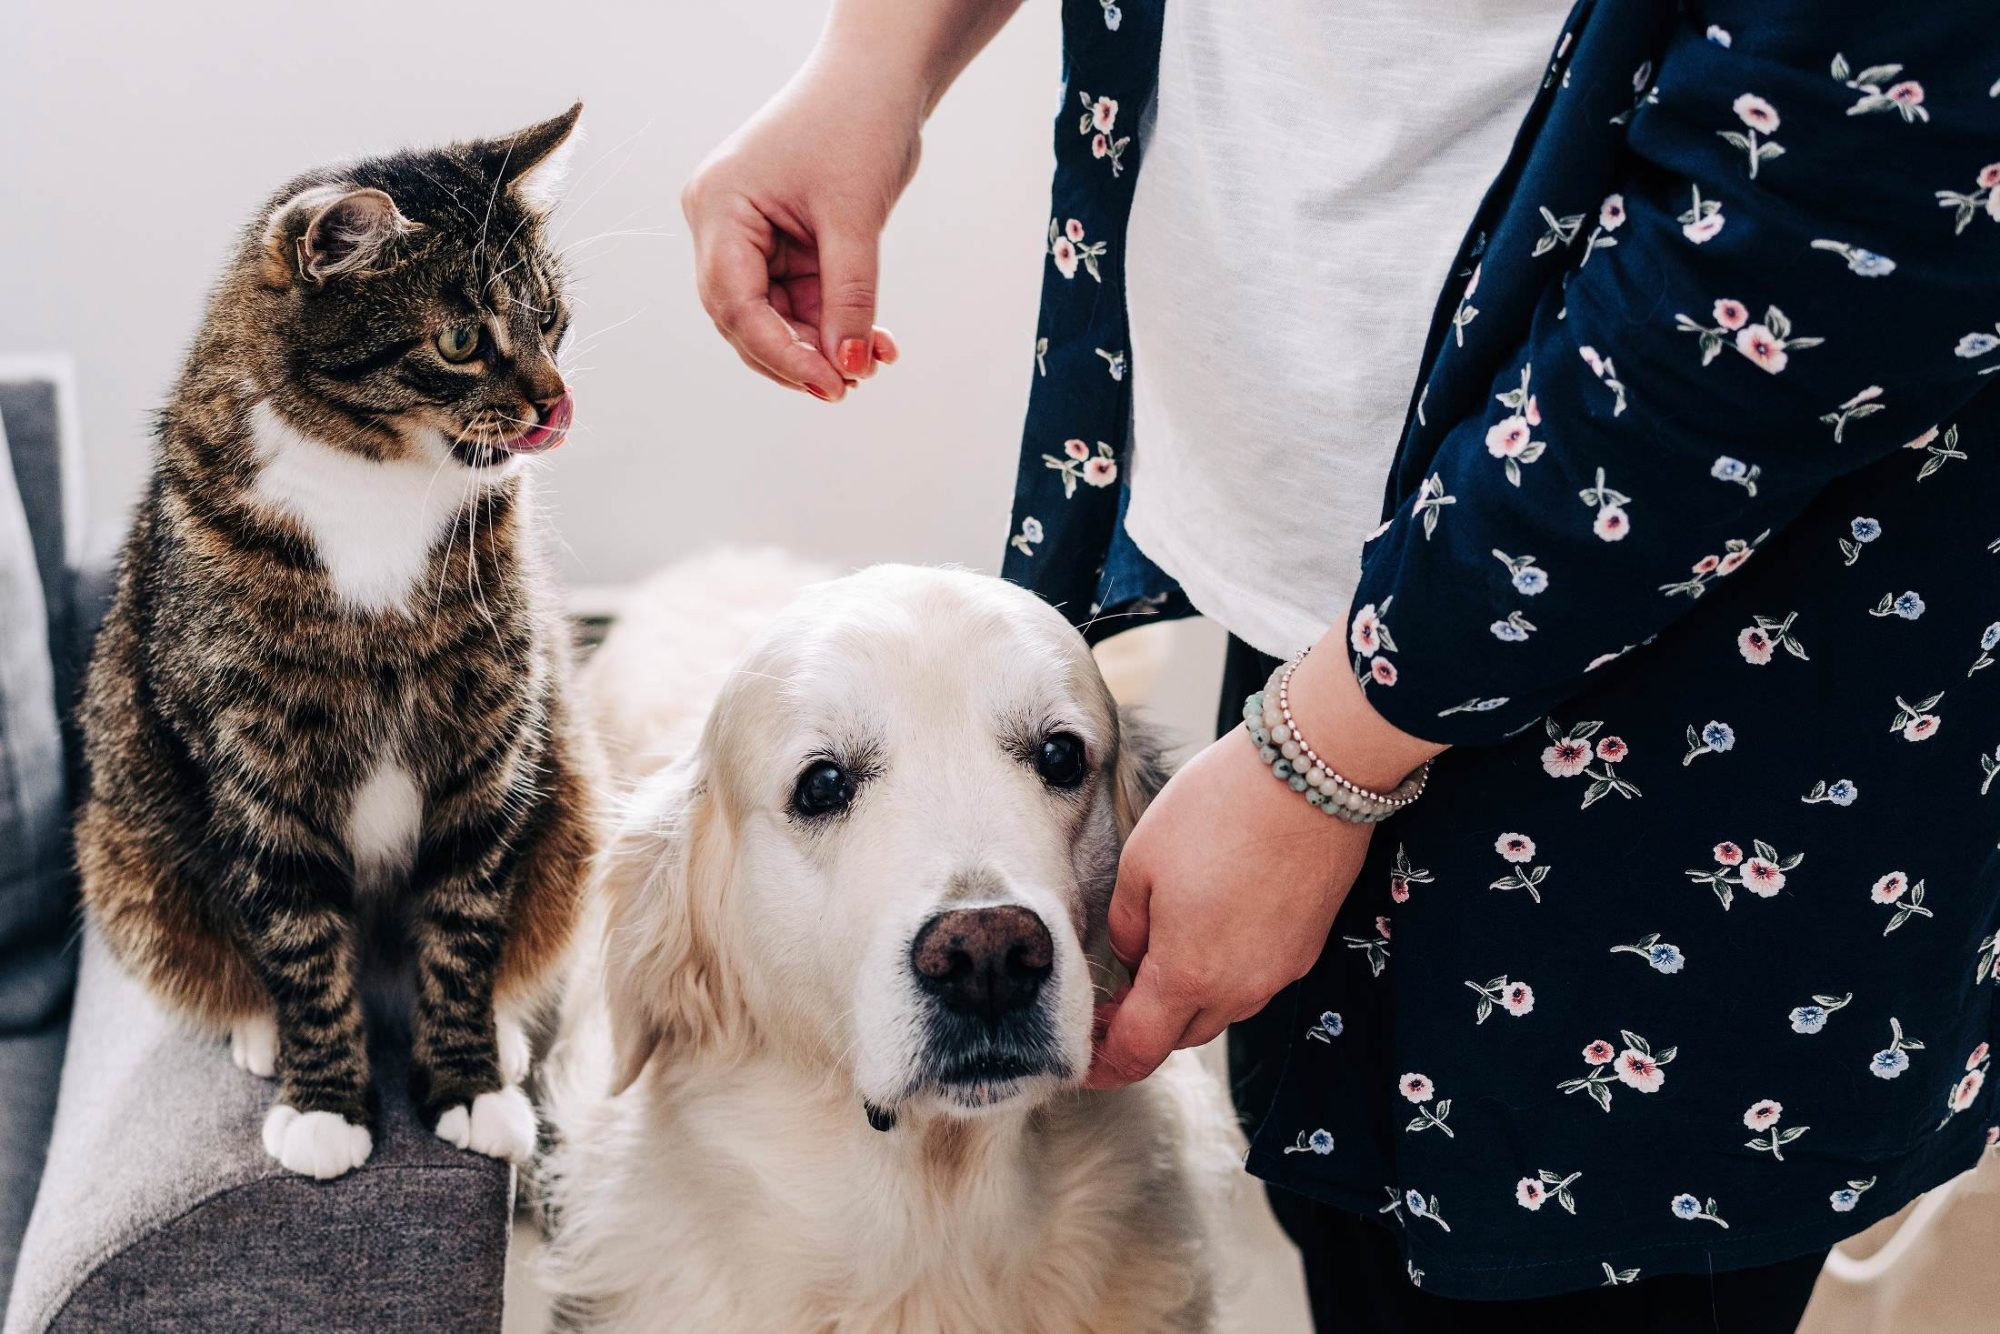 Owner training cat and dog with a treat